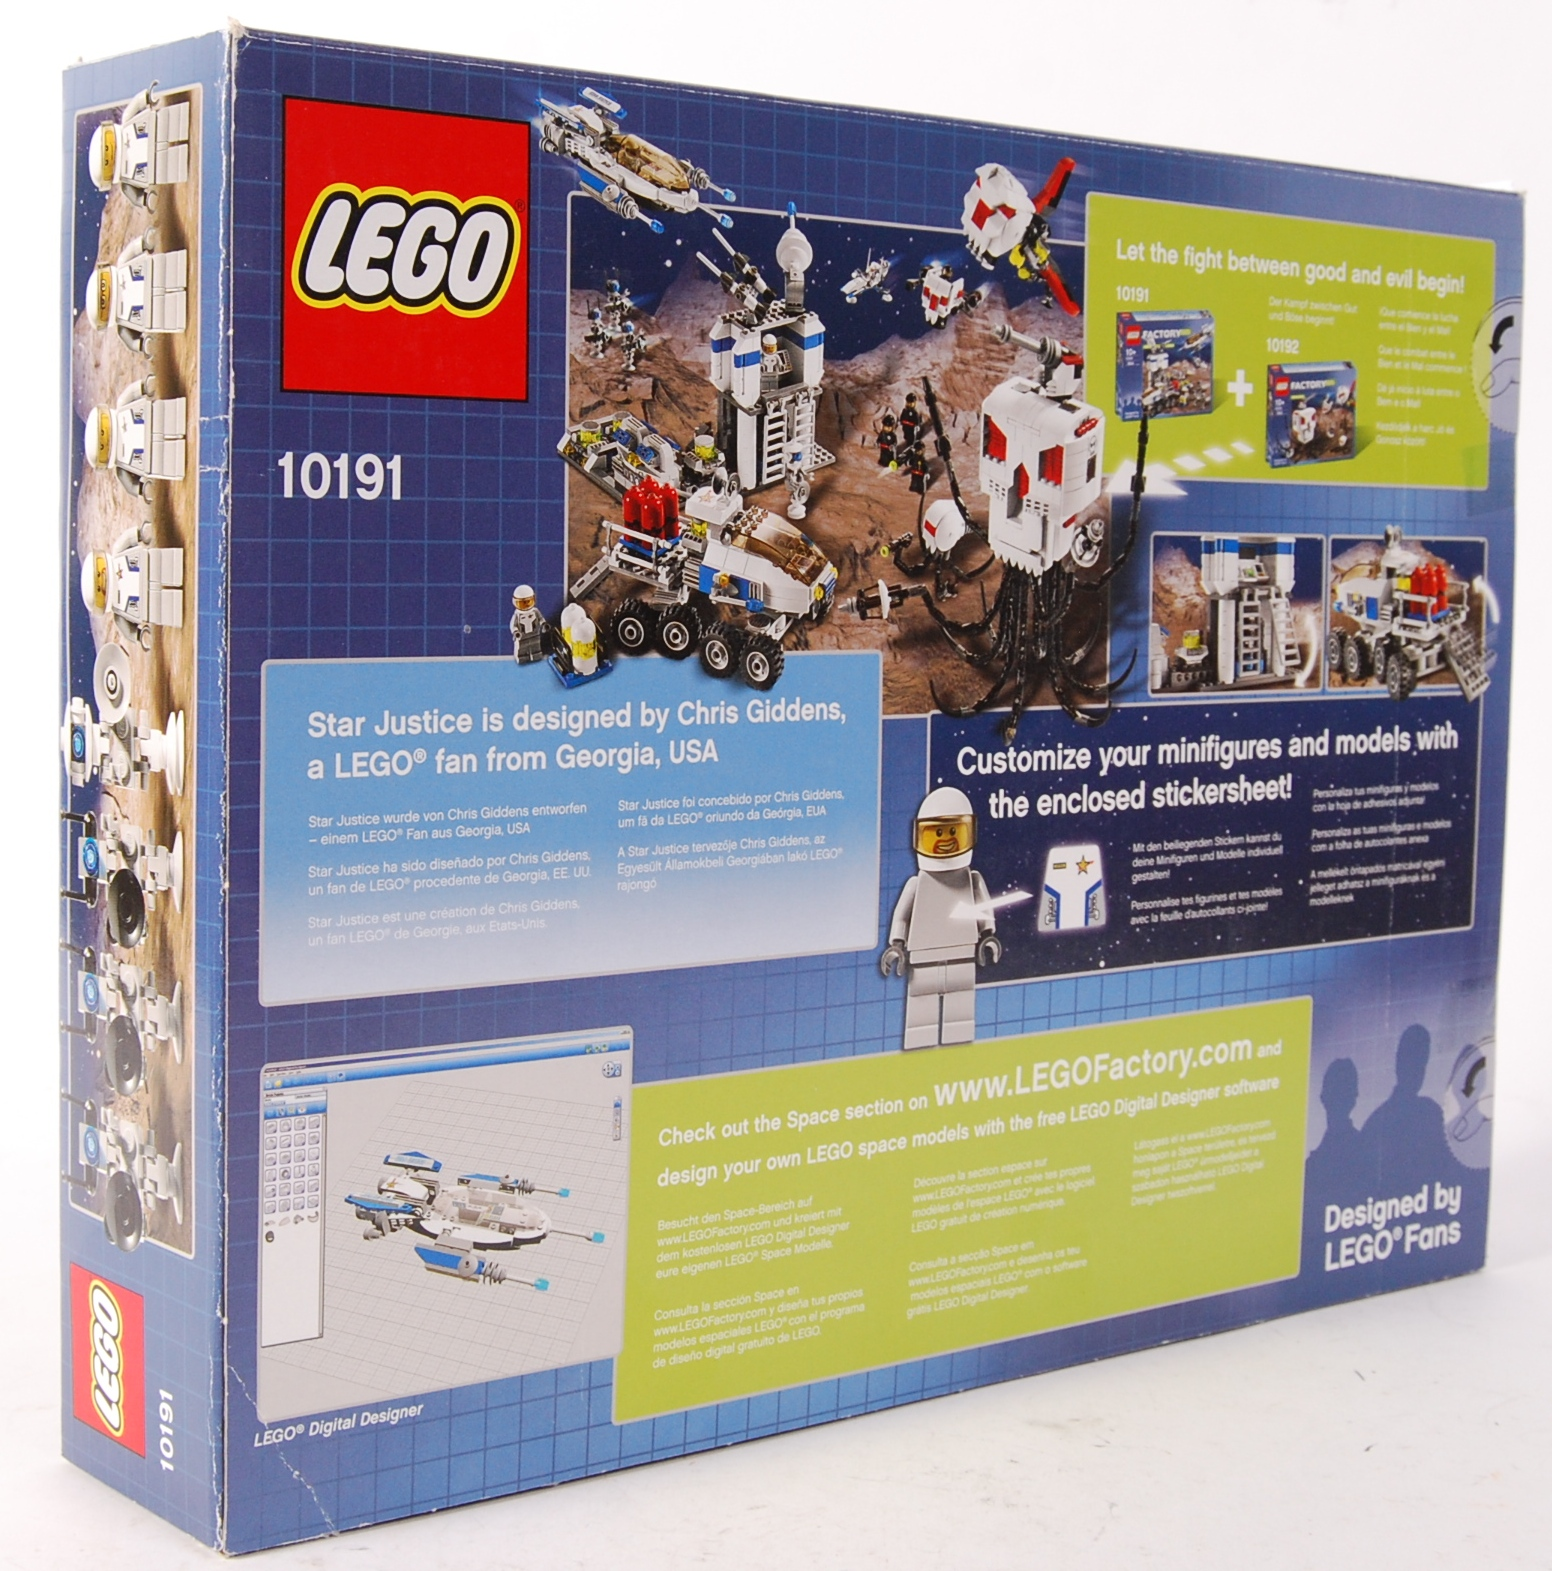 LEGO FACTORY 10191 ' STAR JUSTICE ' BOXED SET - Image 2 of 2